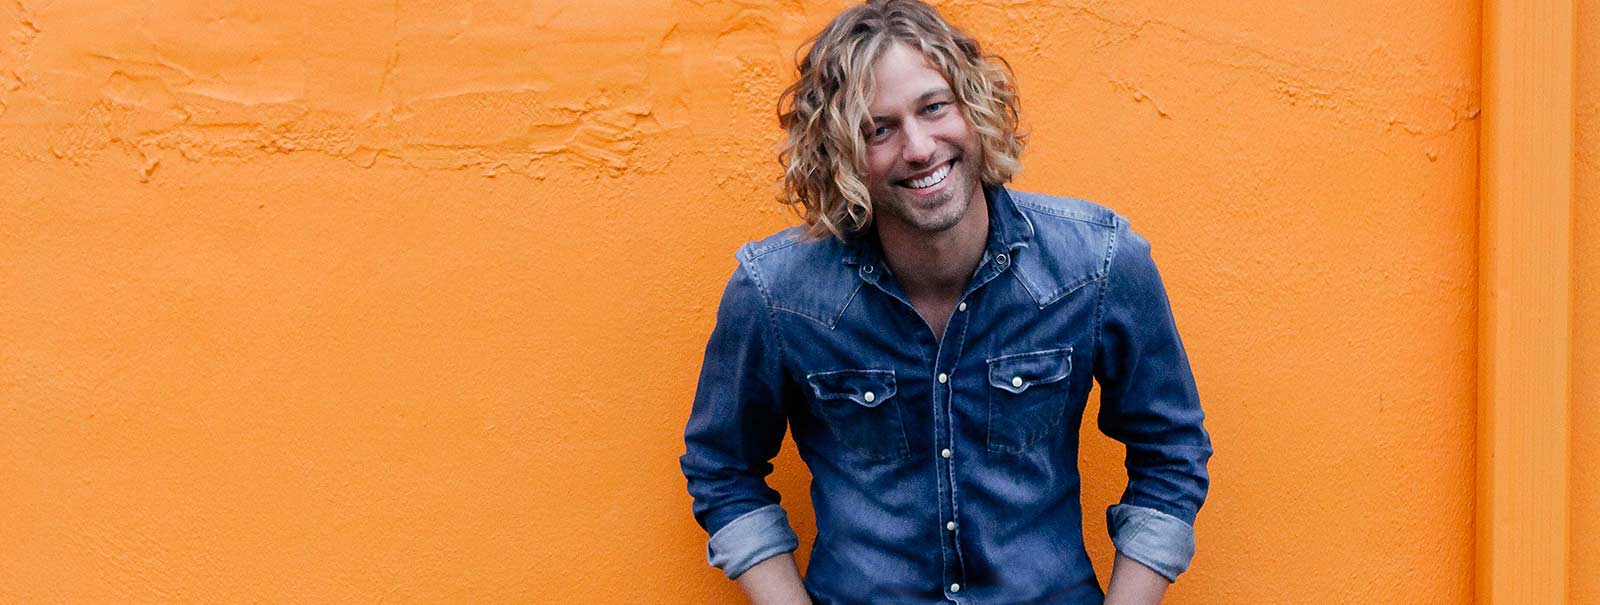 More Info - Casey James